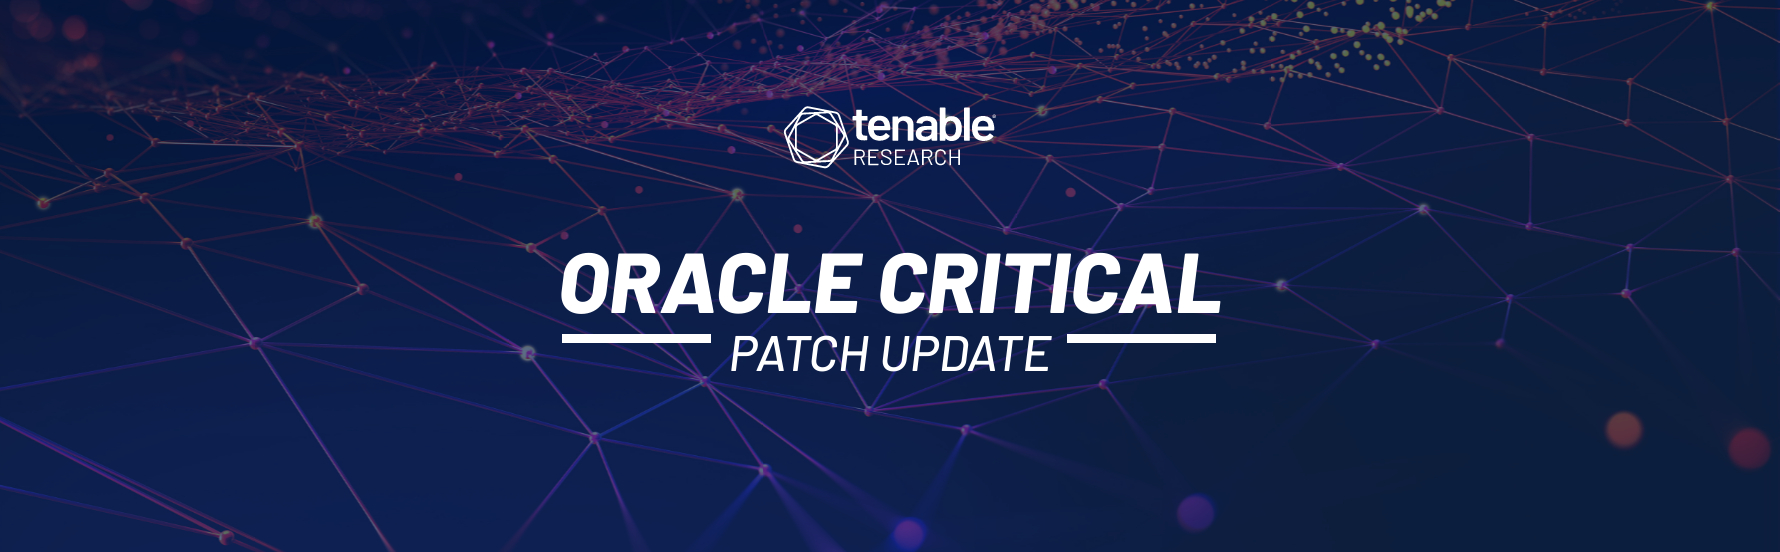 Oracle October 2021 Critical Patch Update Addresses 231 CVEs